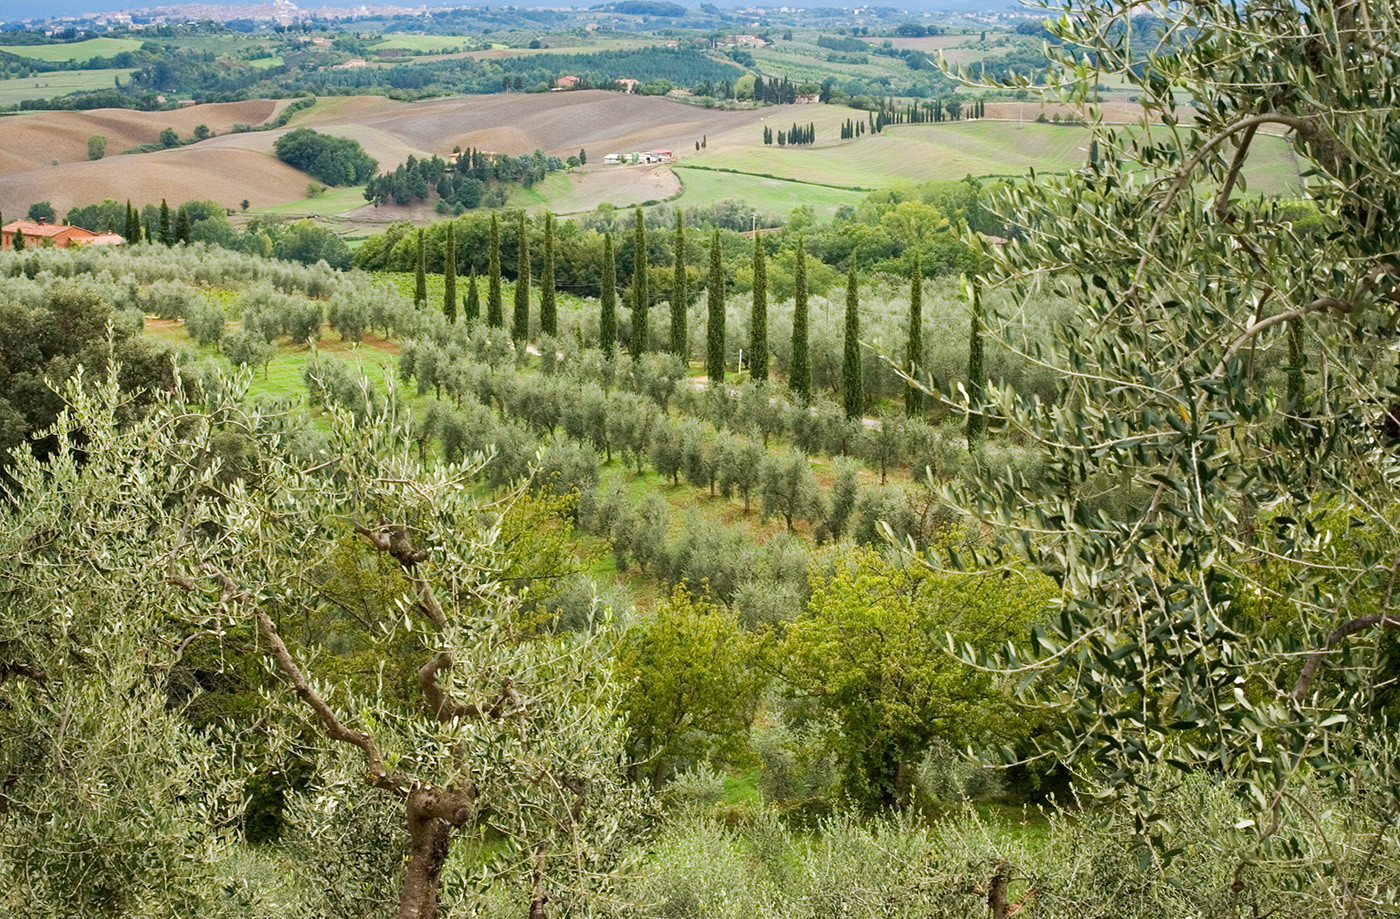 Tuscany landscape with cypress trees Cupressus sempervirens 'Pyramidalis'